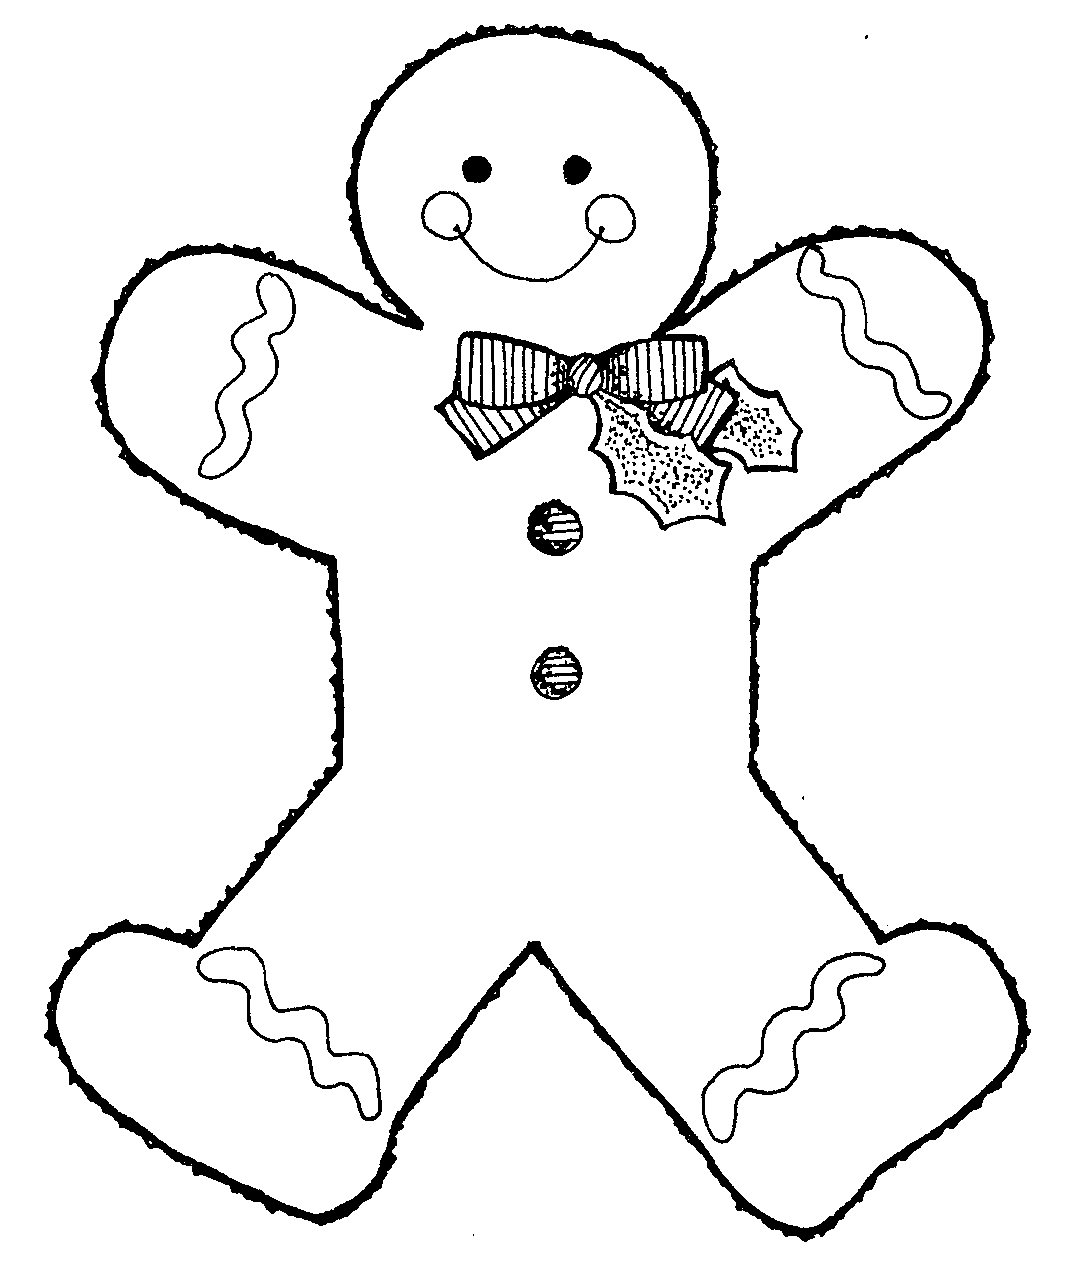 gingerbread man coloring pictures 02